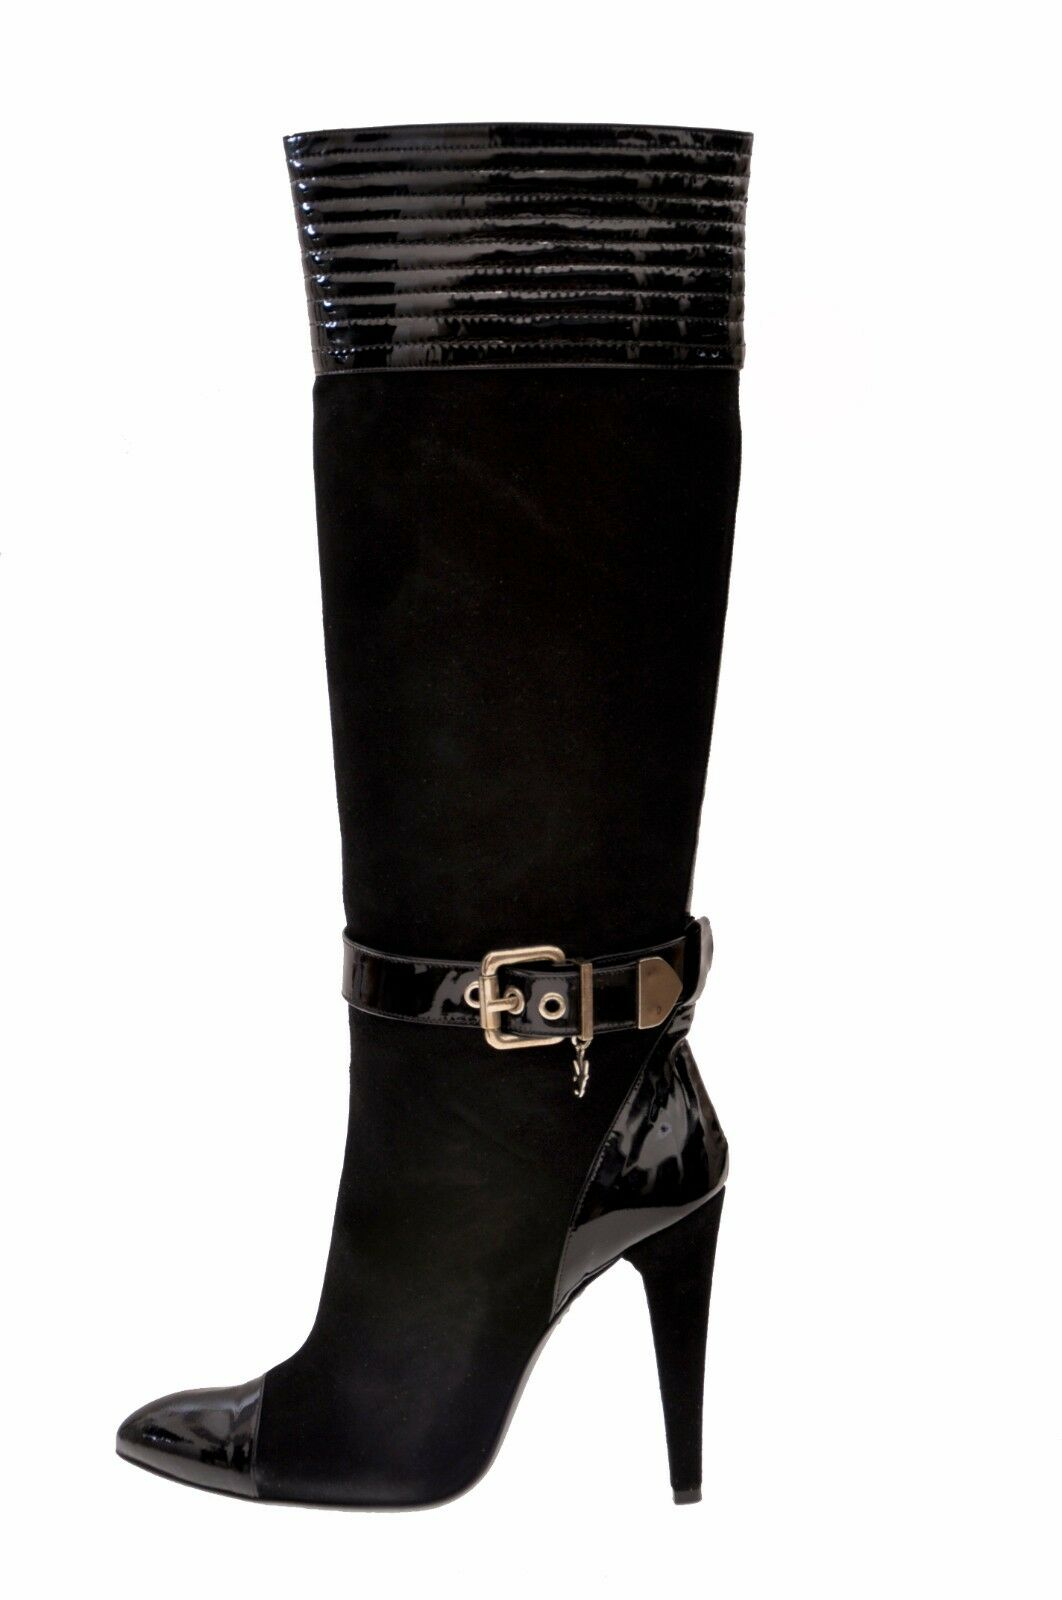 New VERSACE Black Suede and Patent Leather Boots 39 - 9